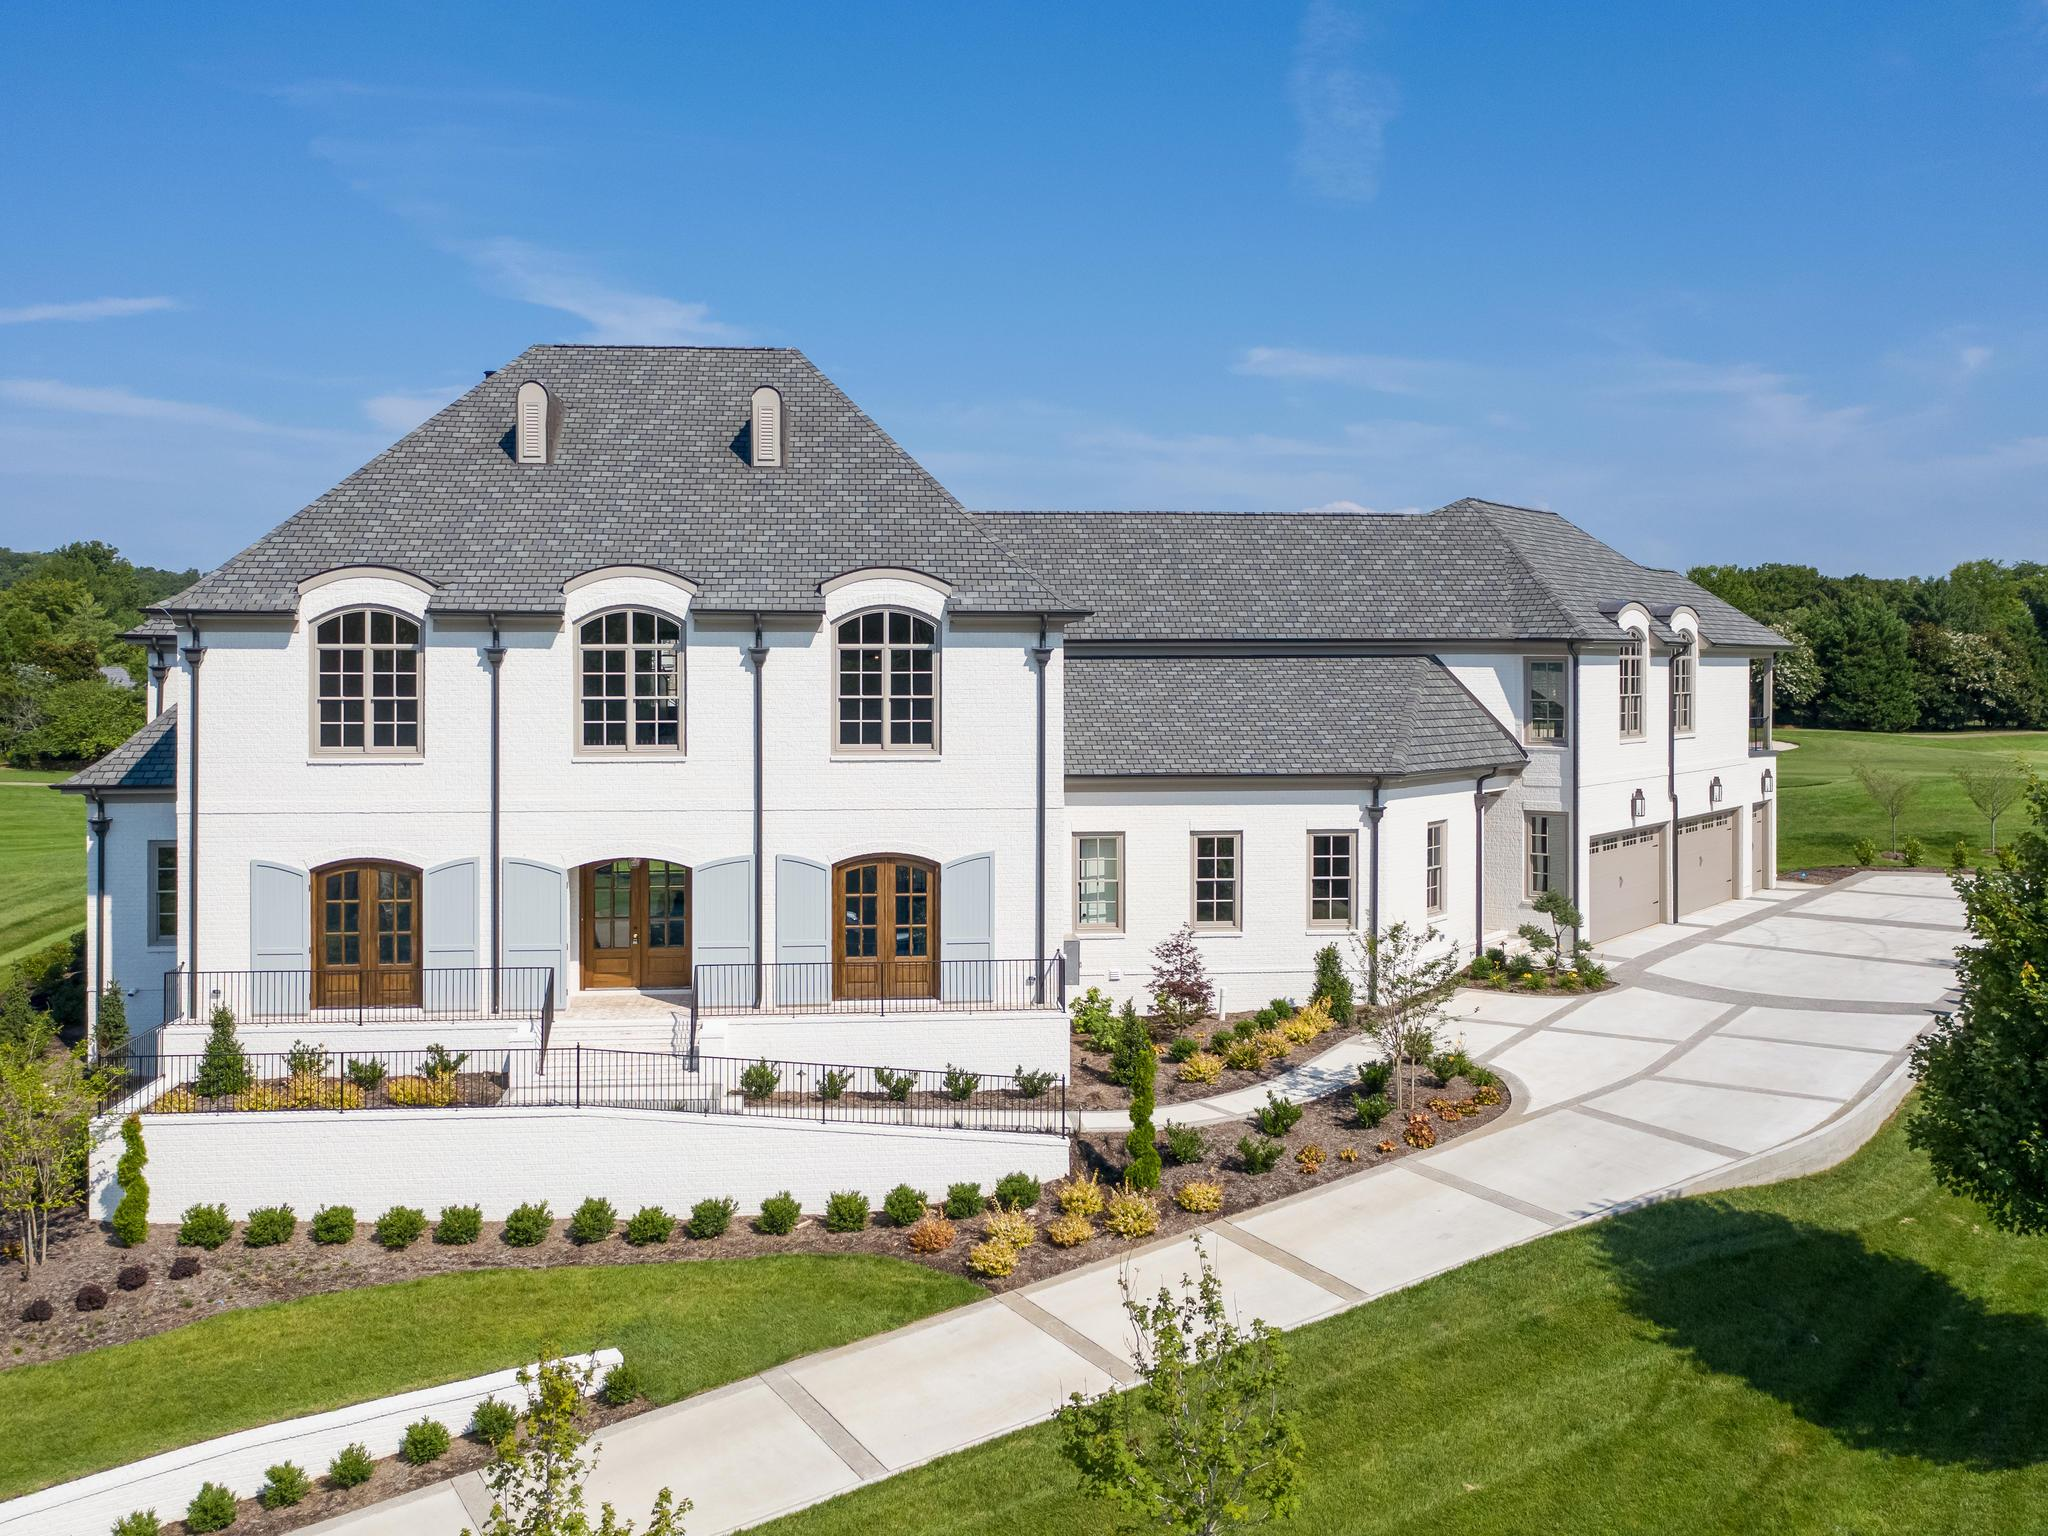 14 Oxmoor Ct, Brentwood, TN 37027 - Brentwood, TN real estate listing